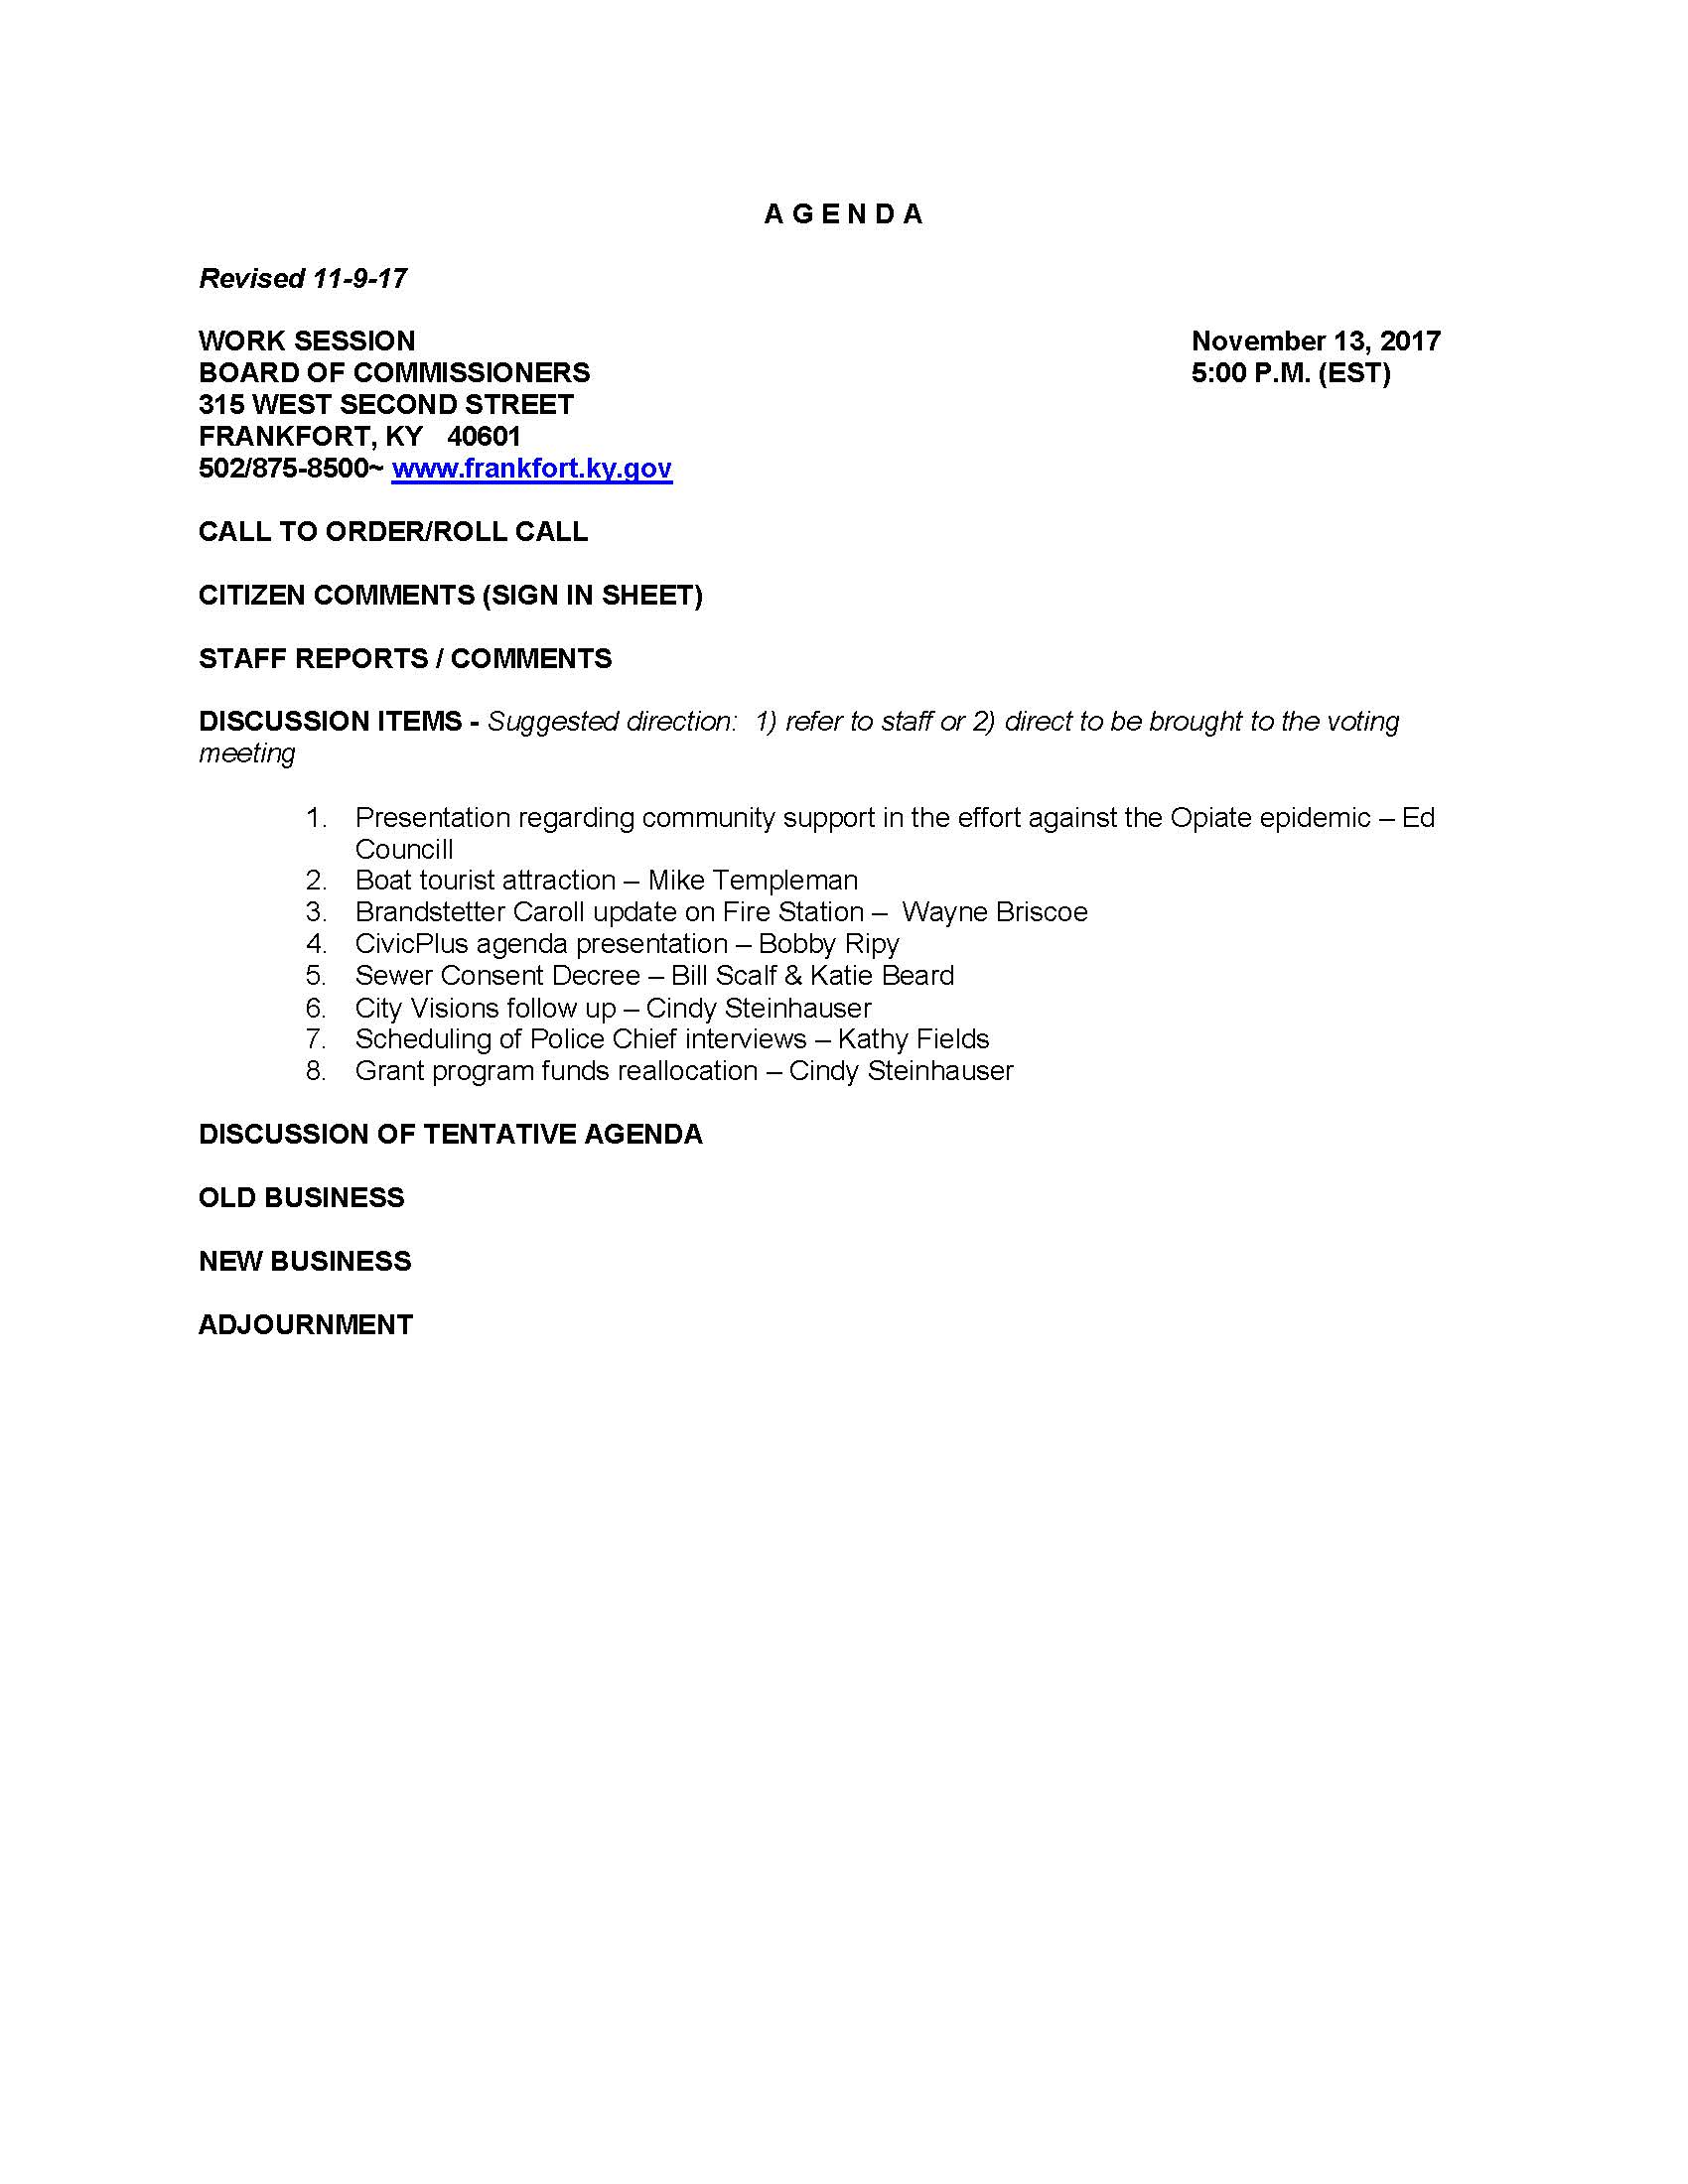 Monday 13 Nov 2017 – City Commission Meetings / Work Session